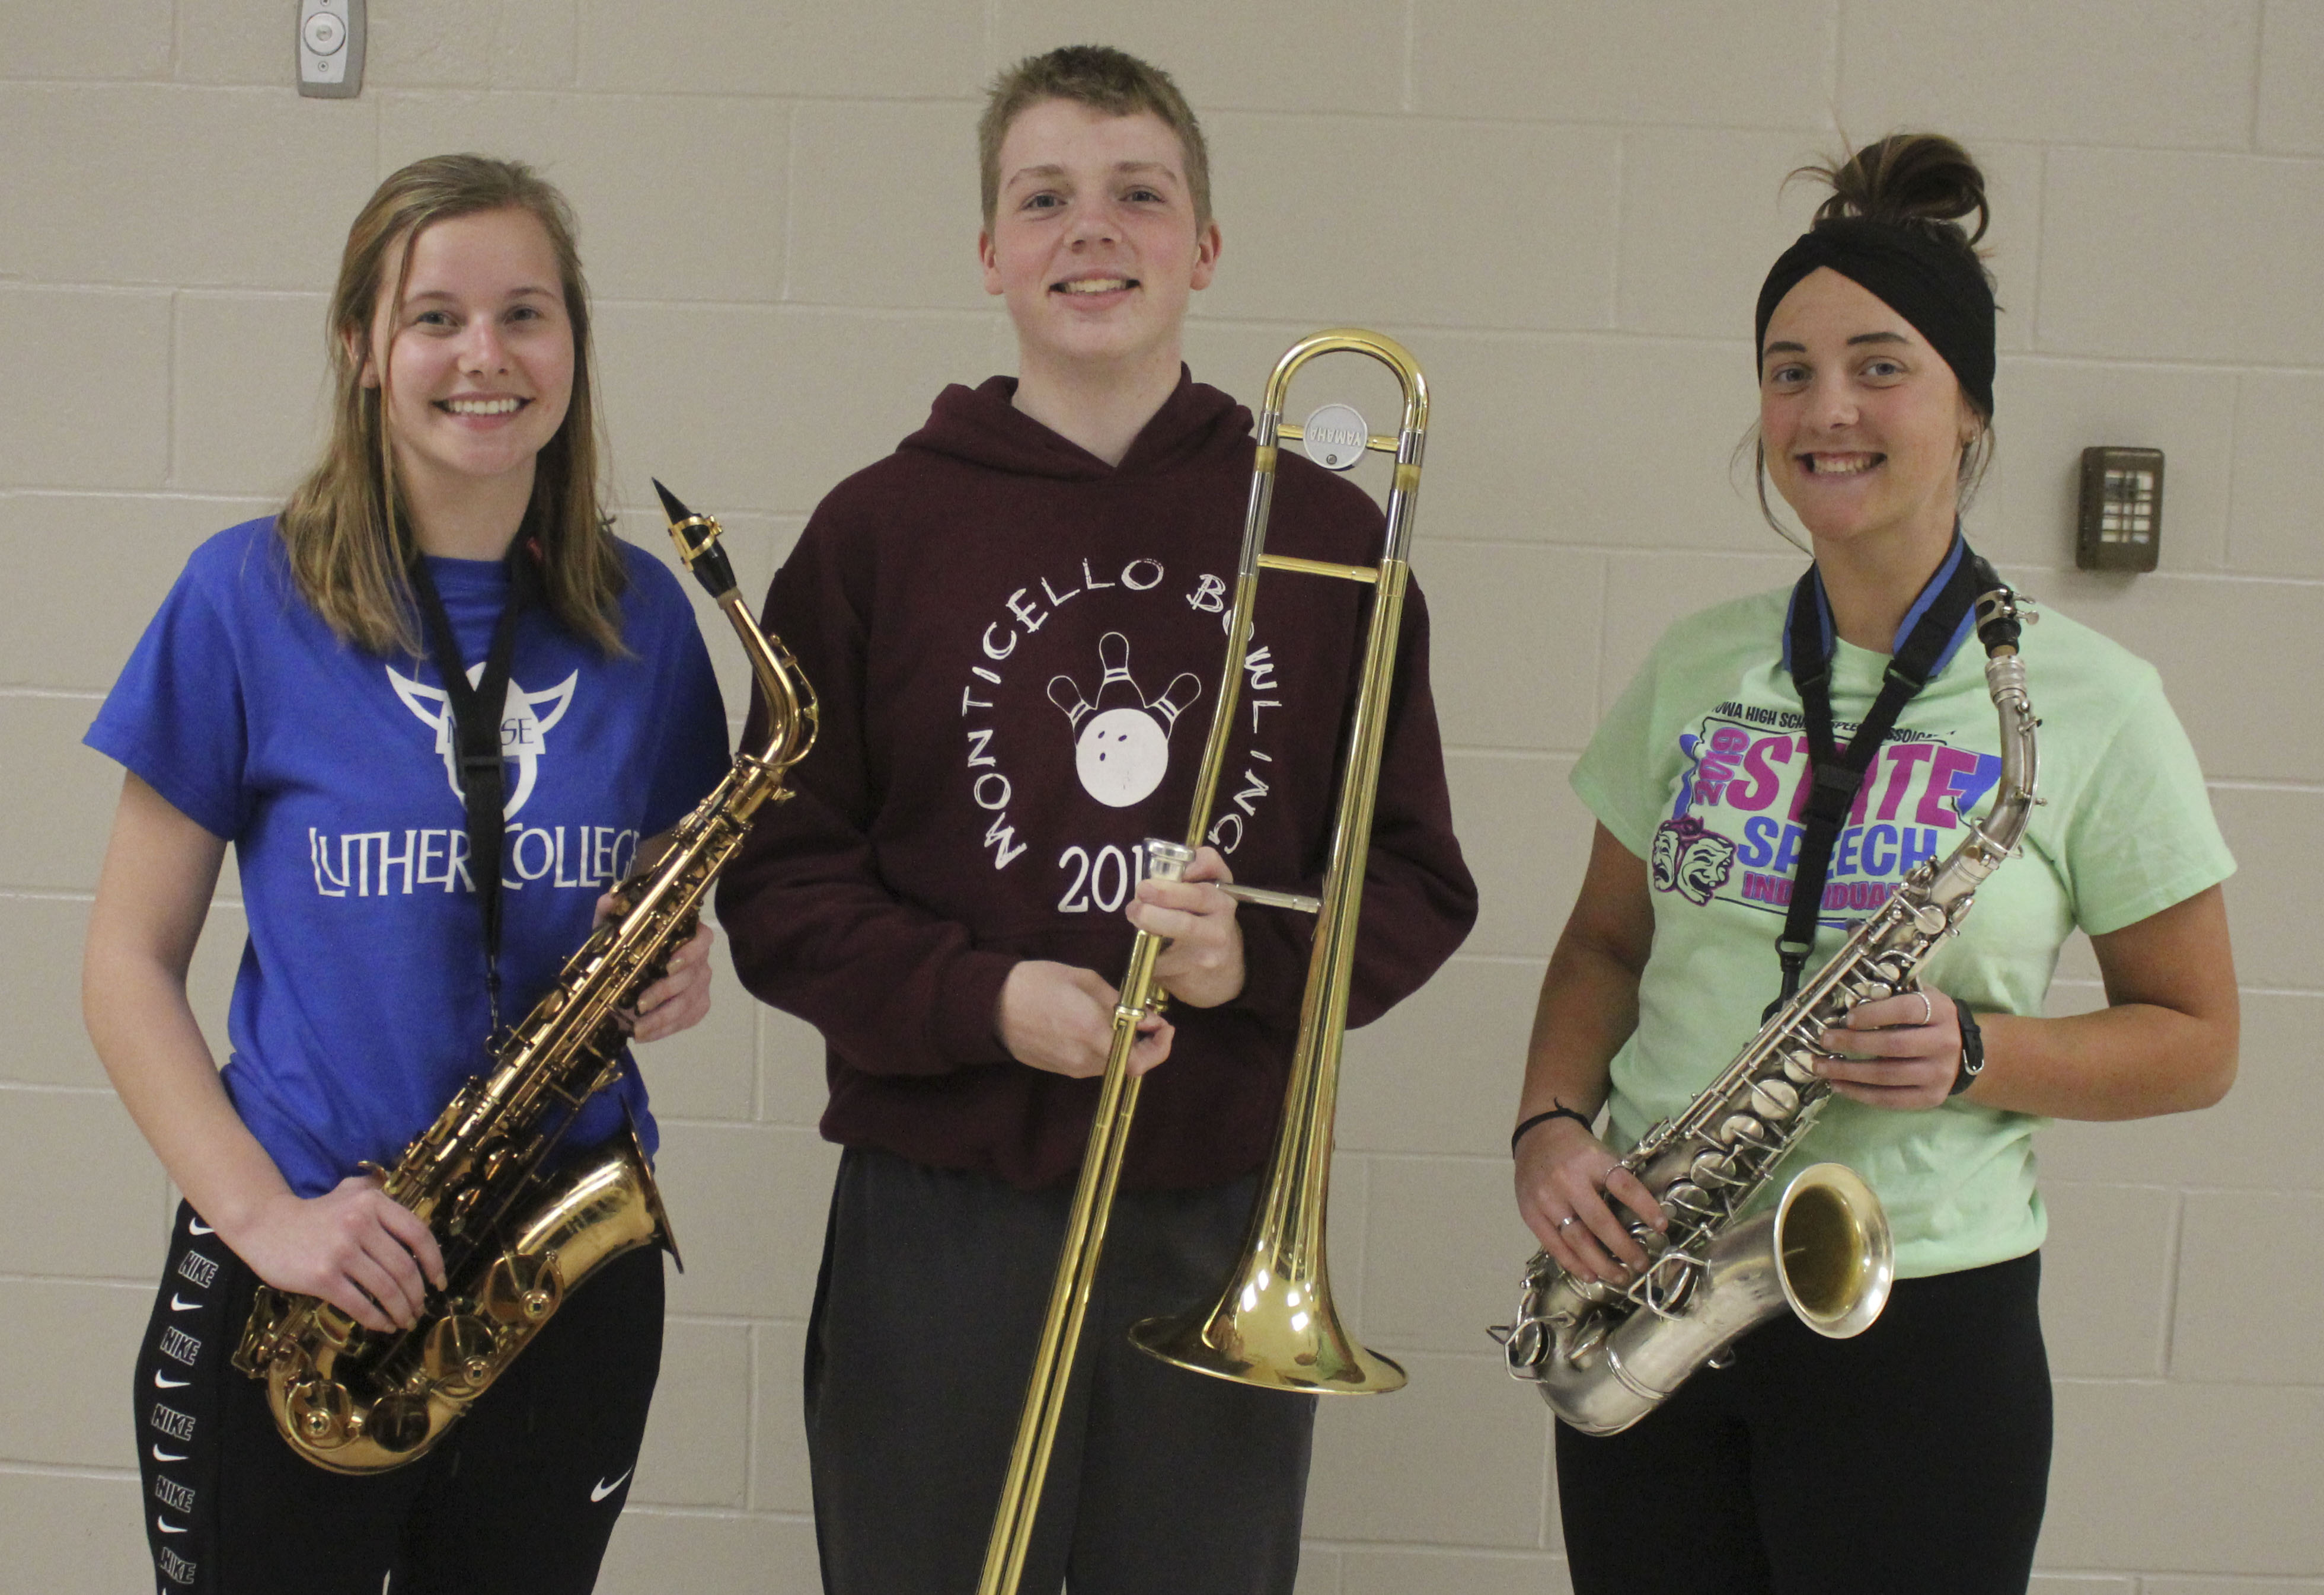 Three Monticello High School students were selected for the All-State Jazz Band. From left are senior Sophia Ahlrichs, tenor sax 2; sophomore Levi Temple, trombone 2; and junior Micah Williams, alternate alto sax. The All-State Band will perform a concert May 9 as part of the Iowa Bandmasters Associa- tion Conference in Des Moines. (Photo by Pete Temple)